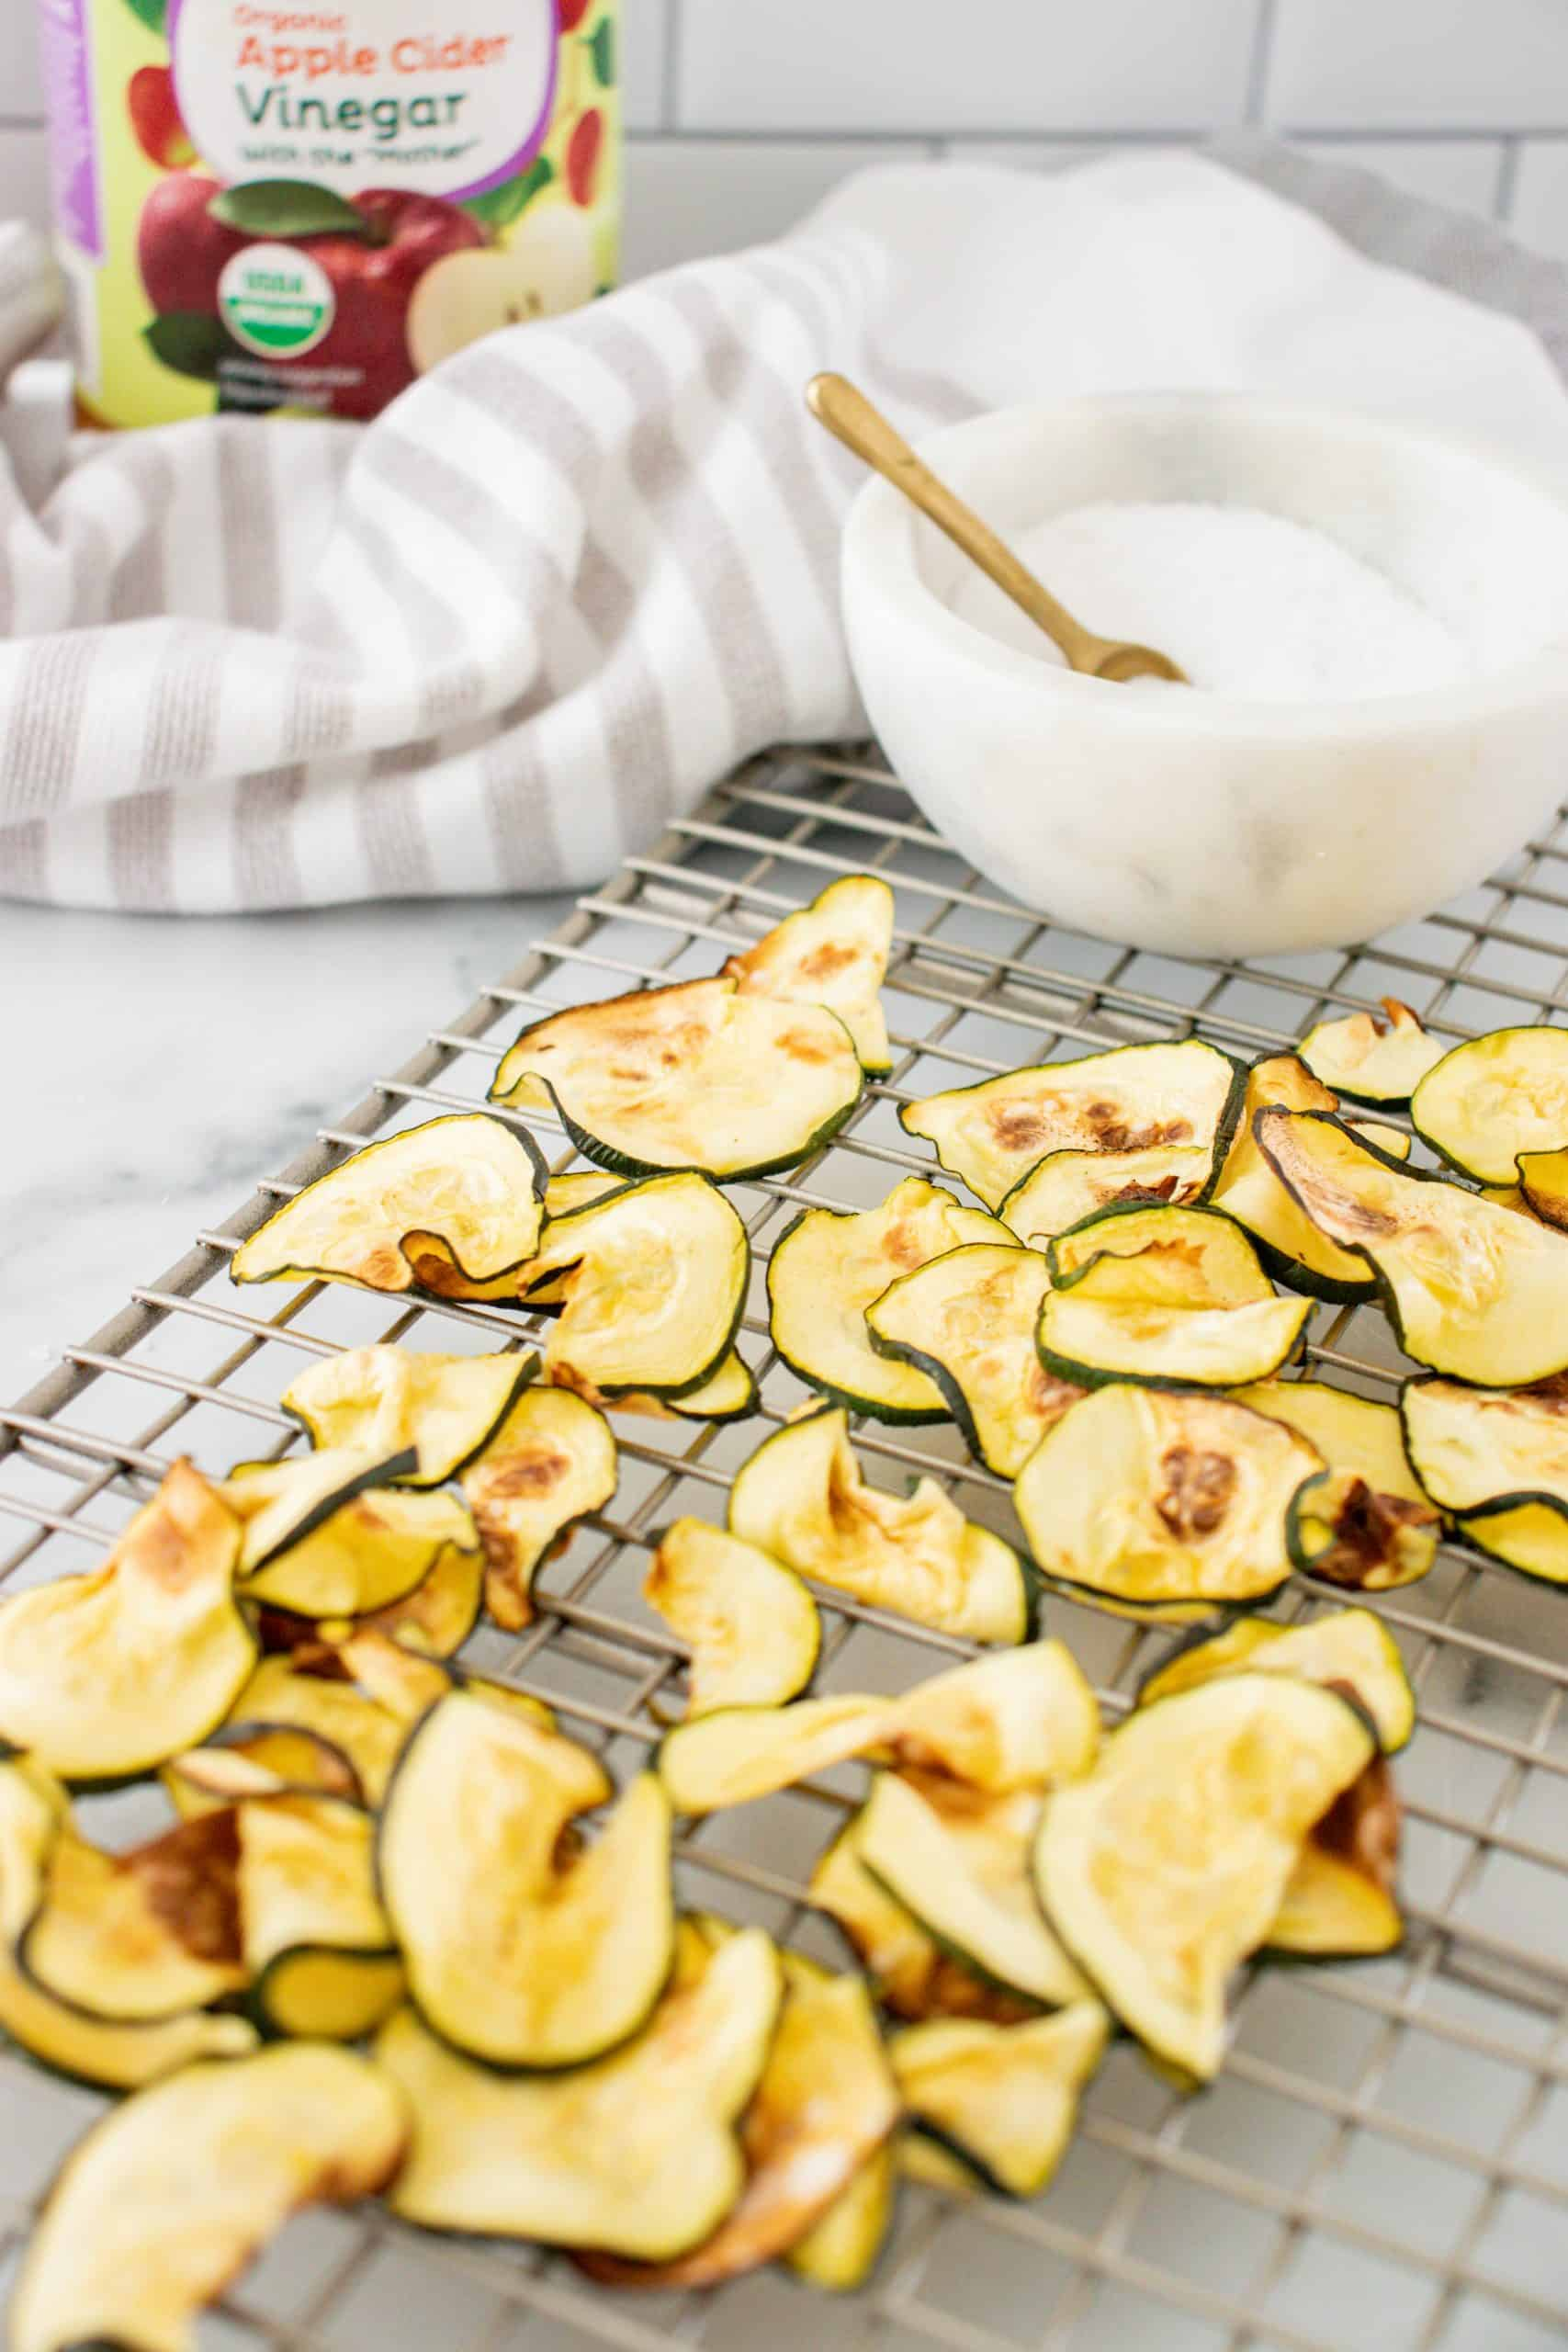 Best Low Carb Air Fryer Recipe With Salt and Vinegar Zucchini Chips 4 Servings